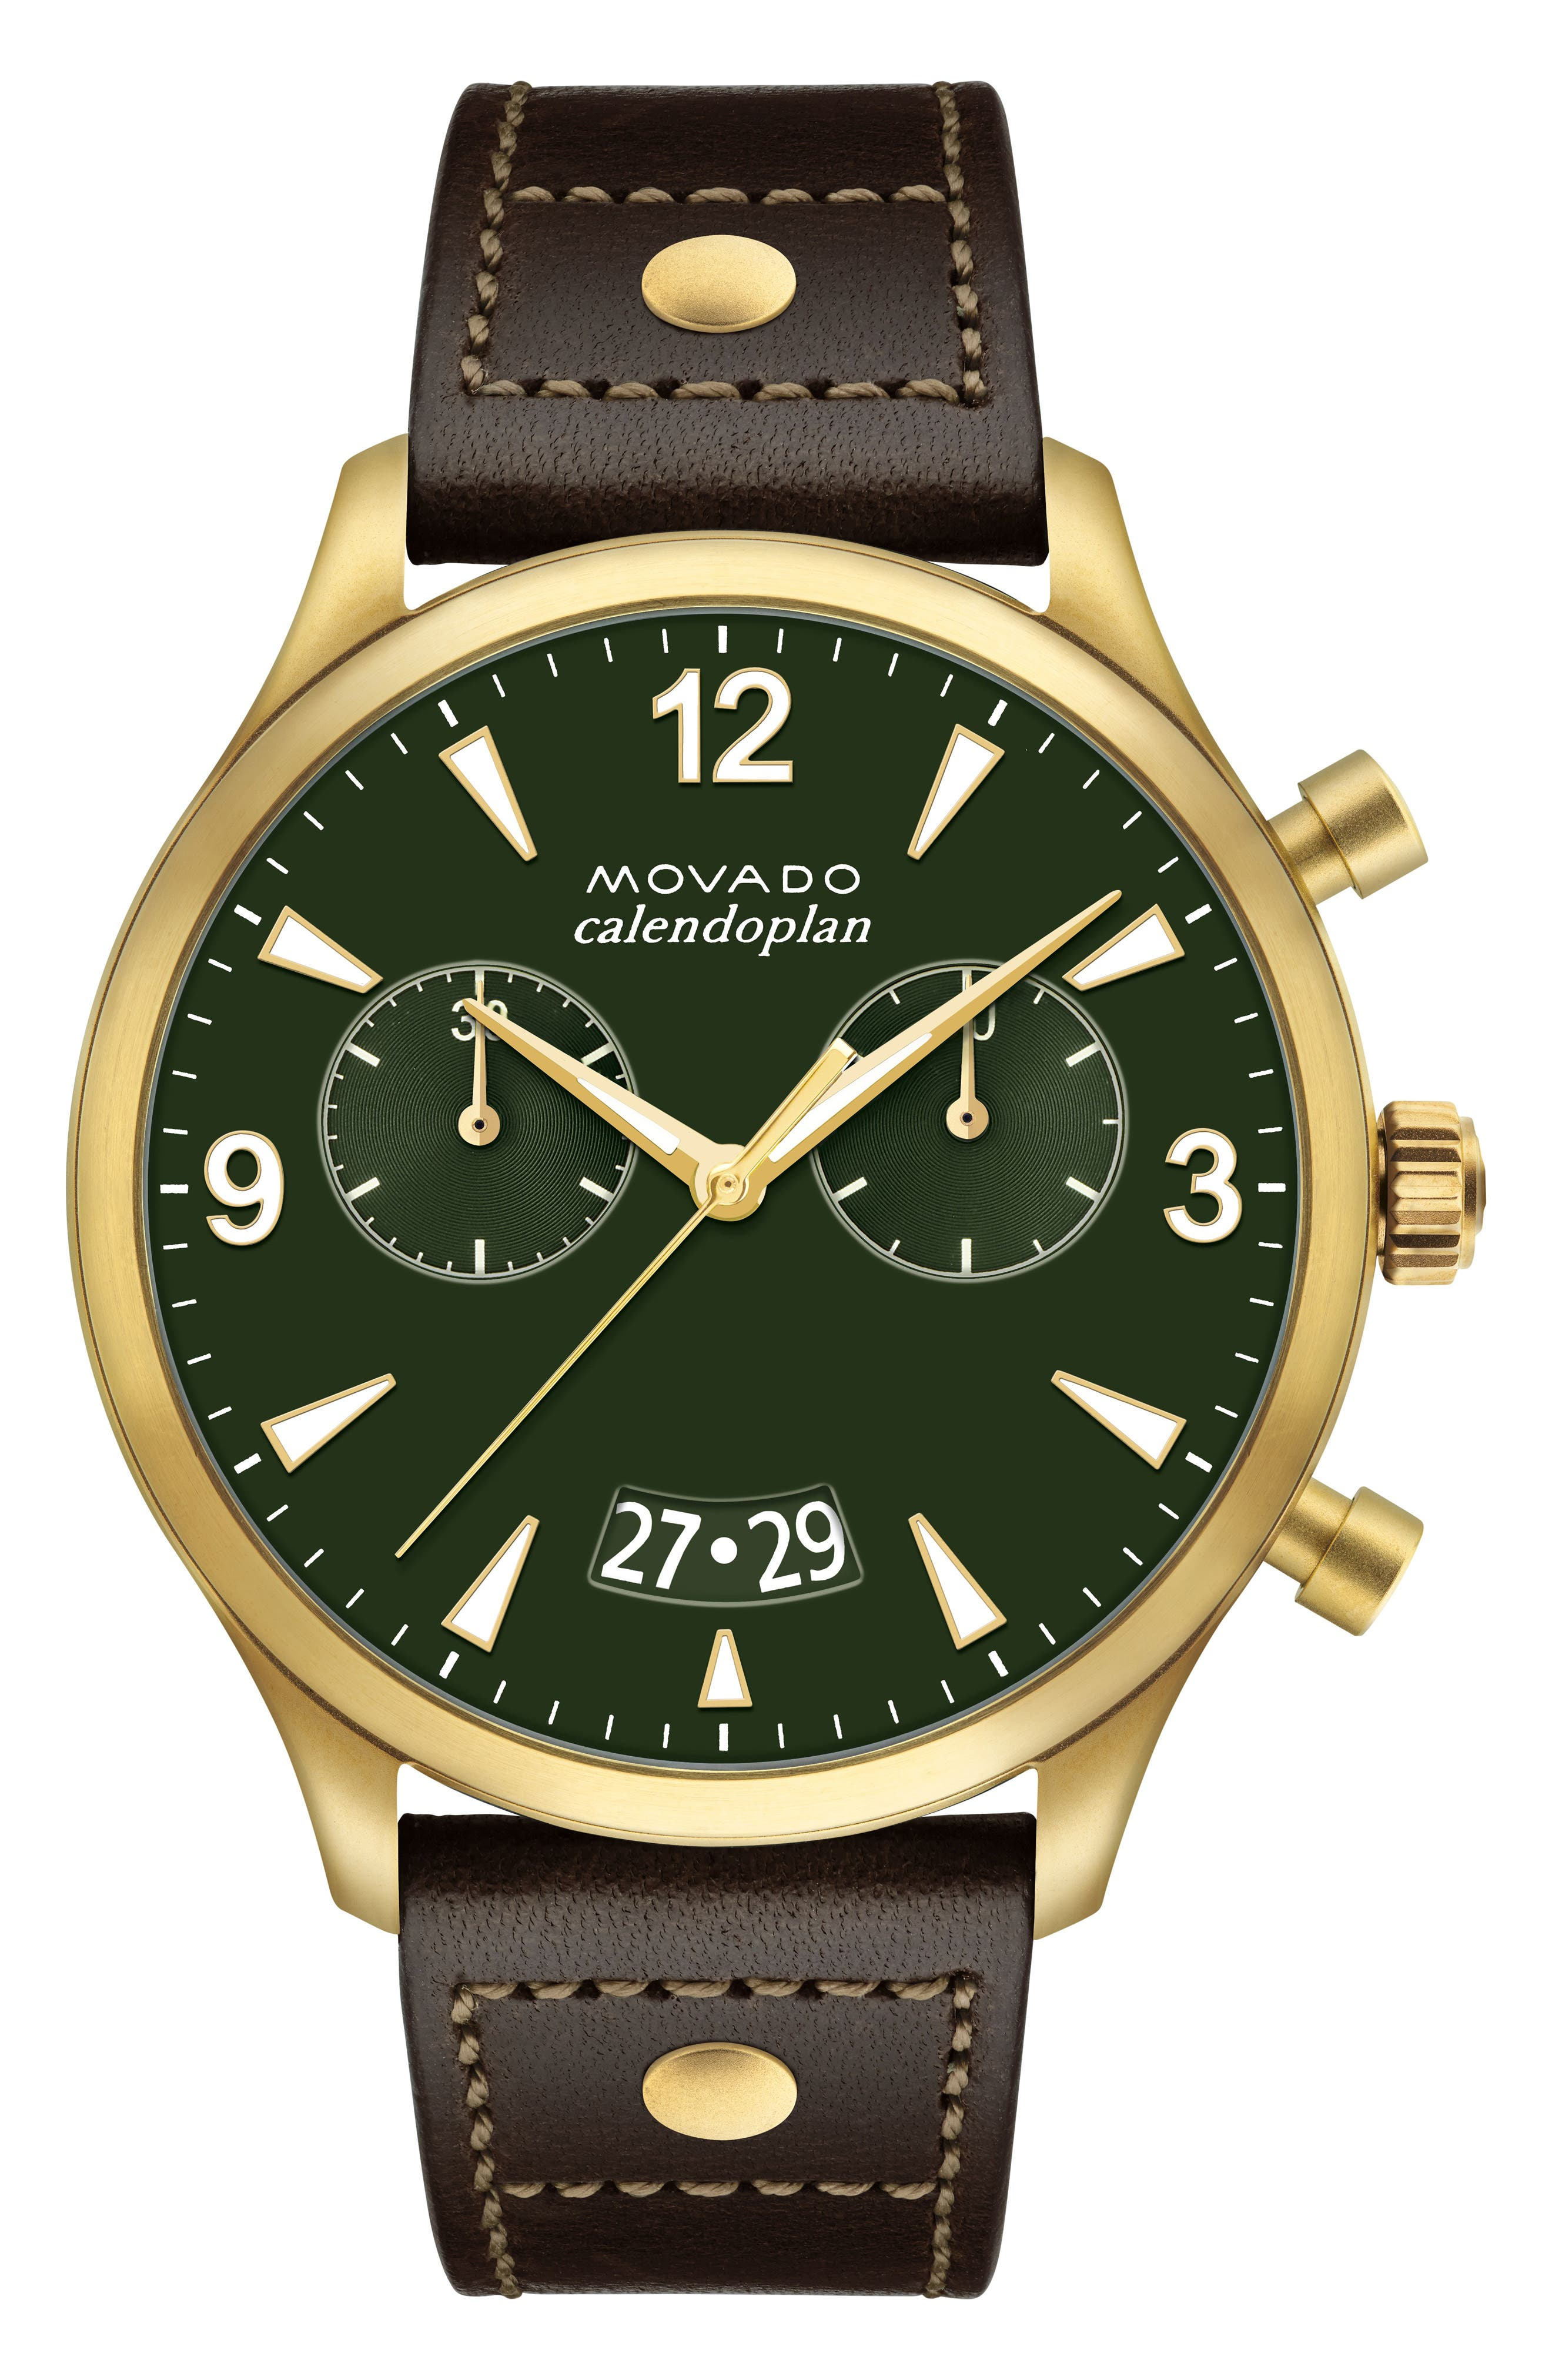 Alternate Image 1 Selected - Movado Heritage Calendoplan Chronograph Leather Strap Watch, 45mm